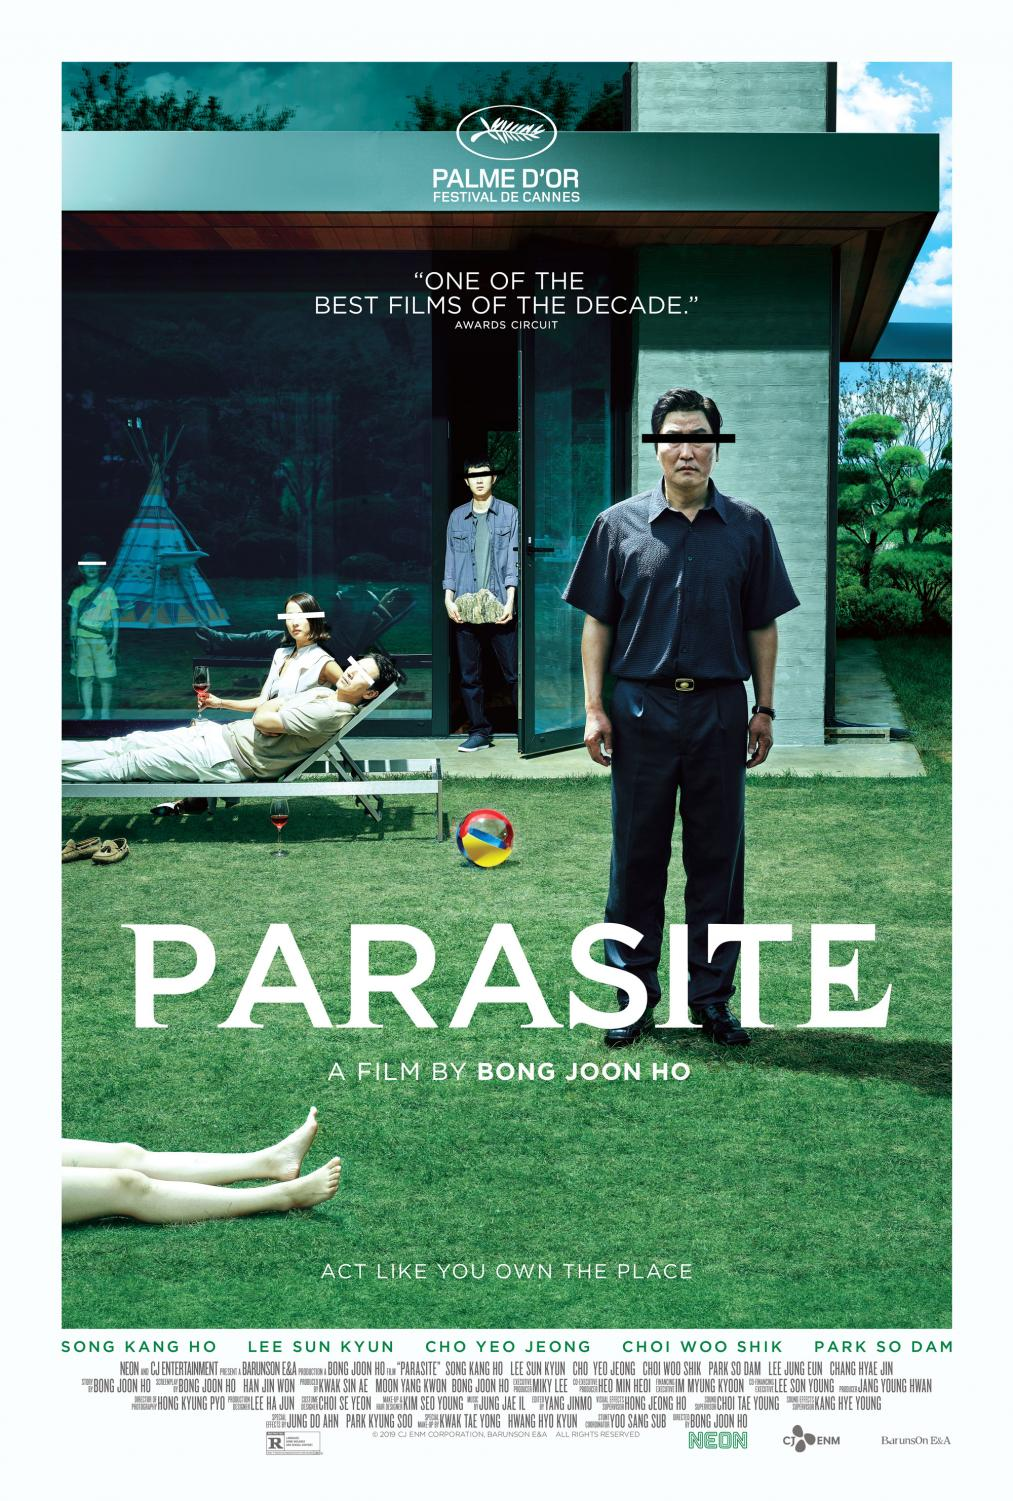 Movie poster for the film Parasite